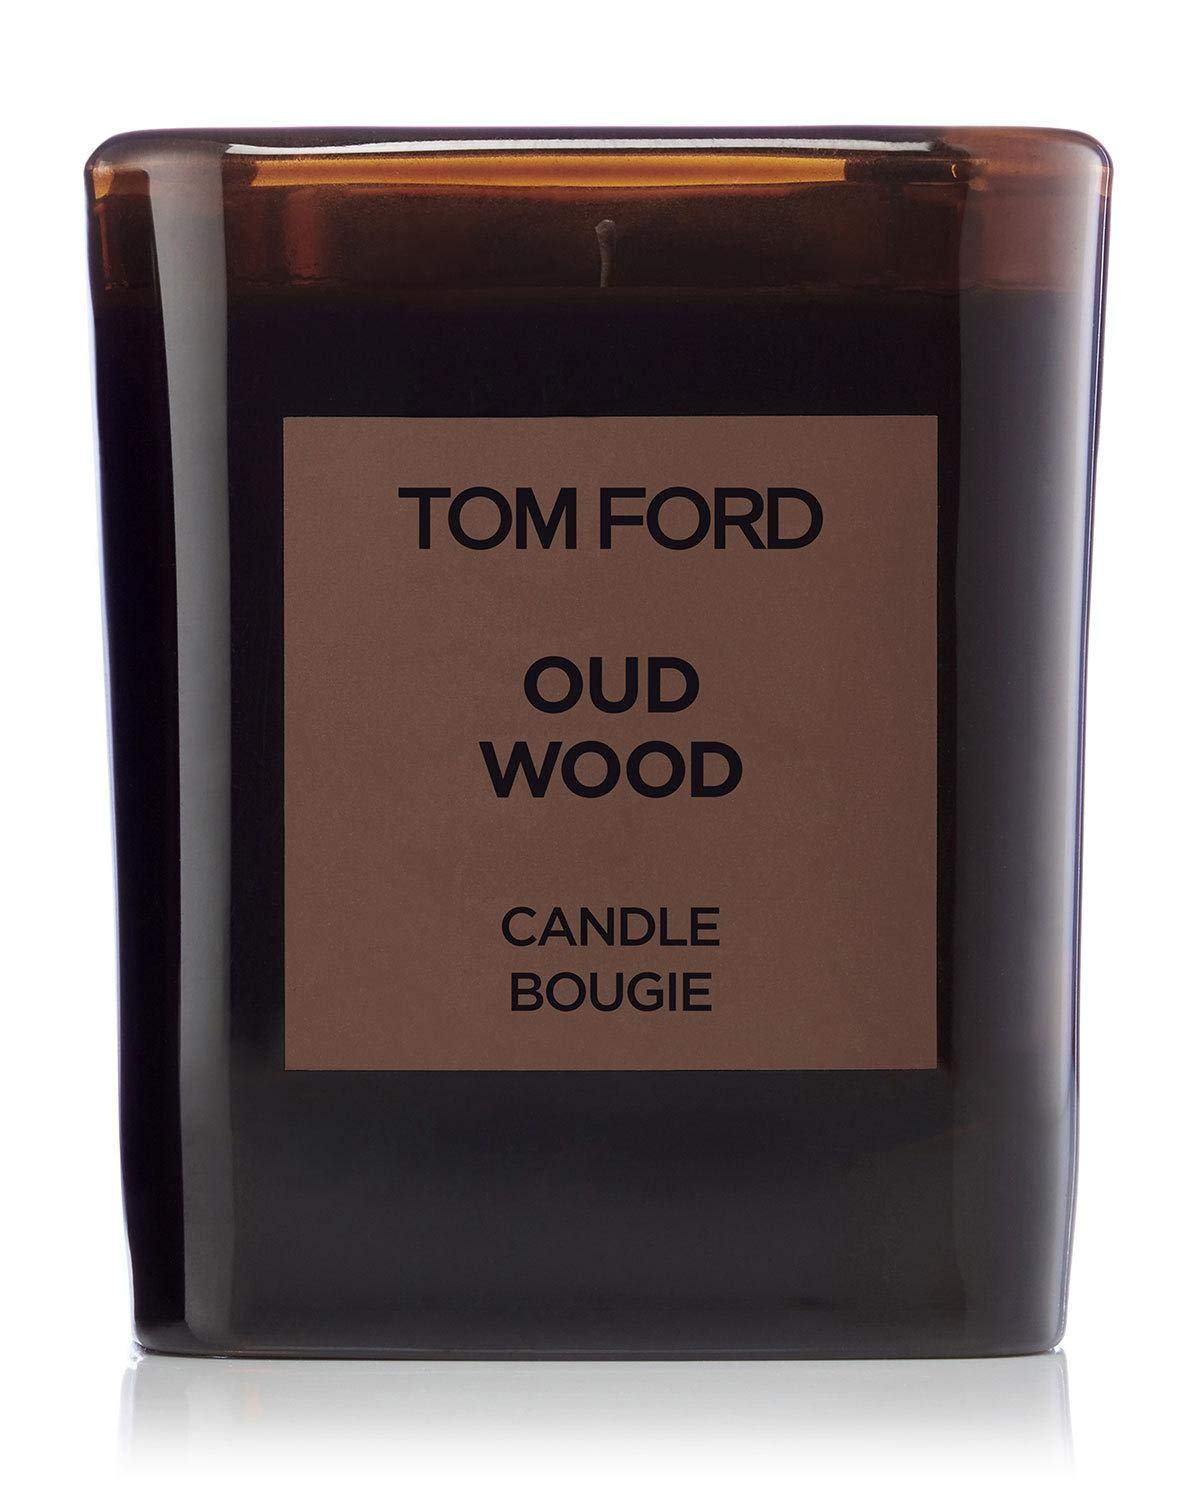 Oud Wood Candle Brand New and Genuine!